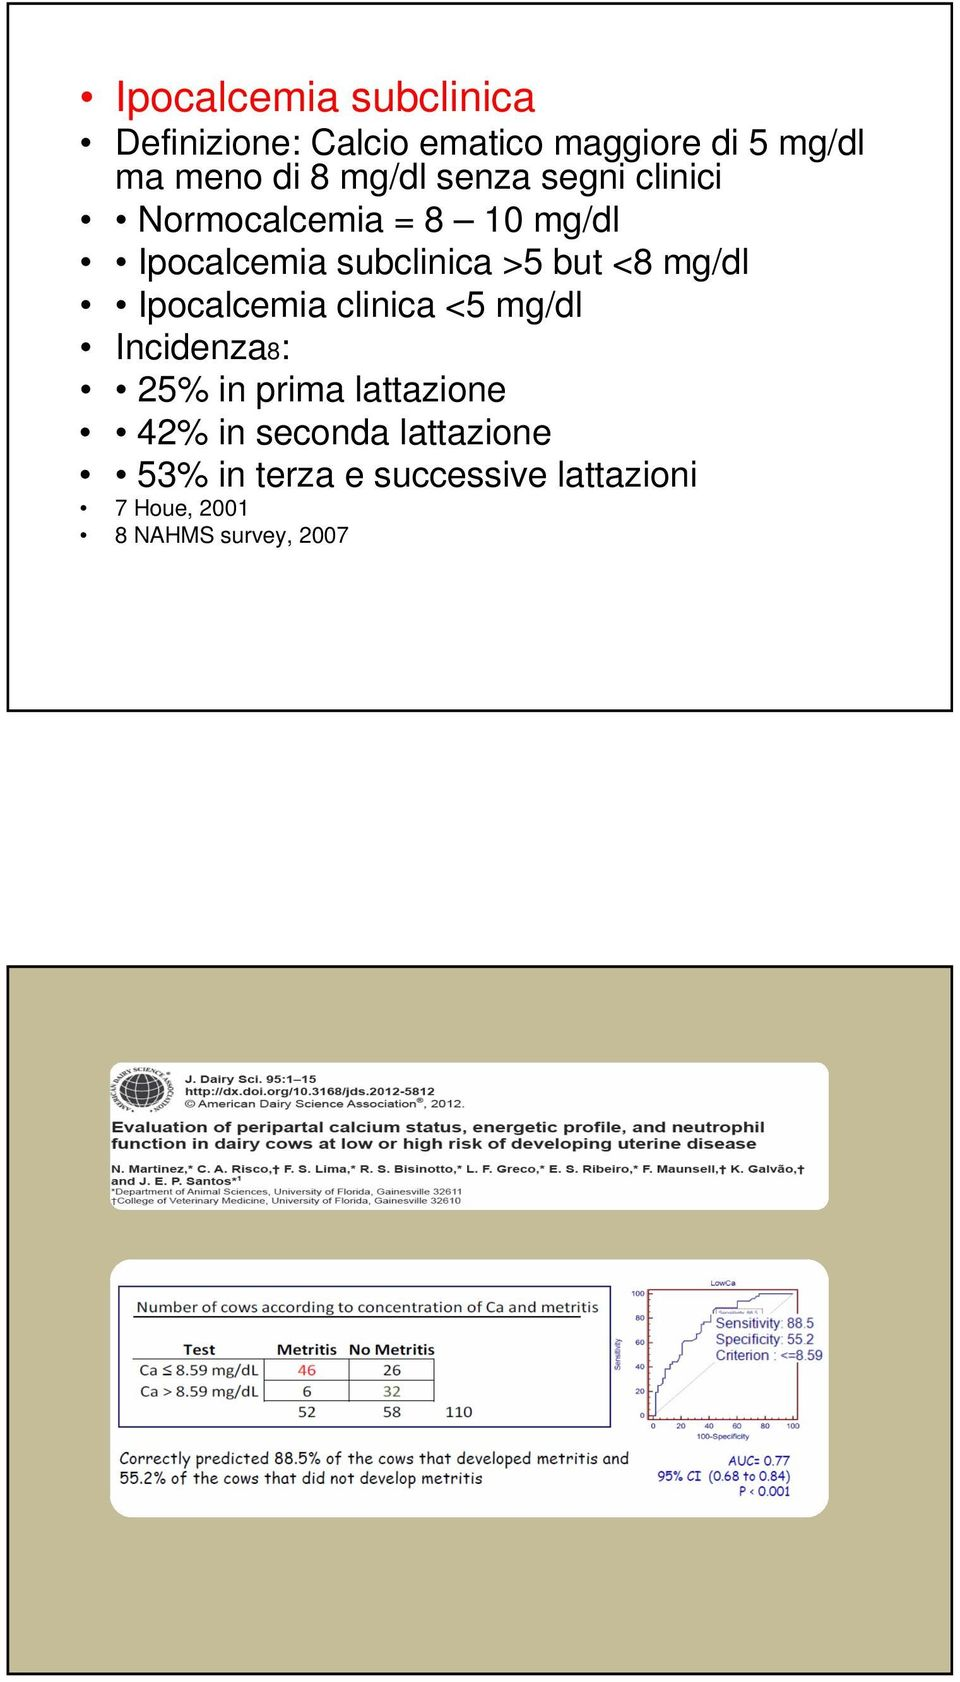 <8 mg/dl Ipocalcemia clinica <5 mg/dl Incidenza8: 25% in prima lattazione 42% in